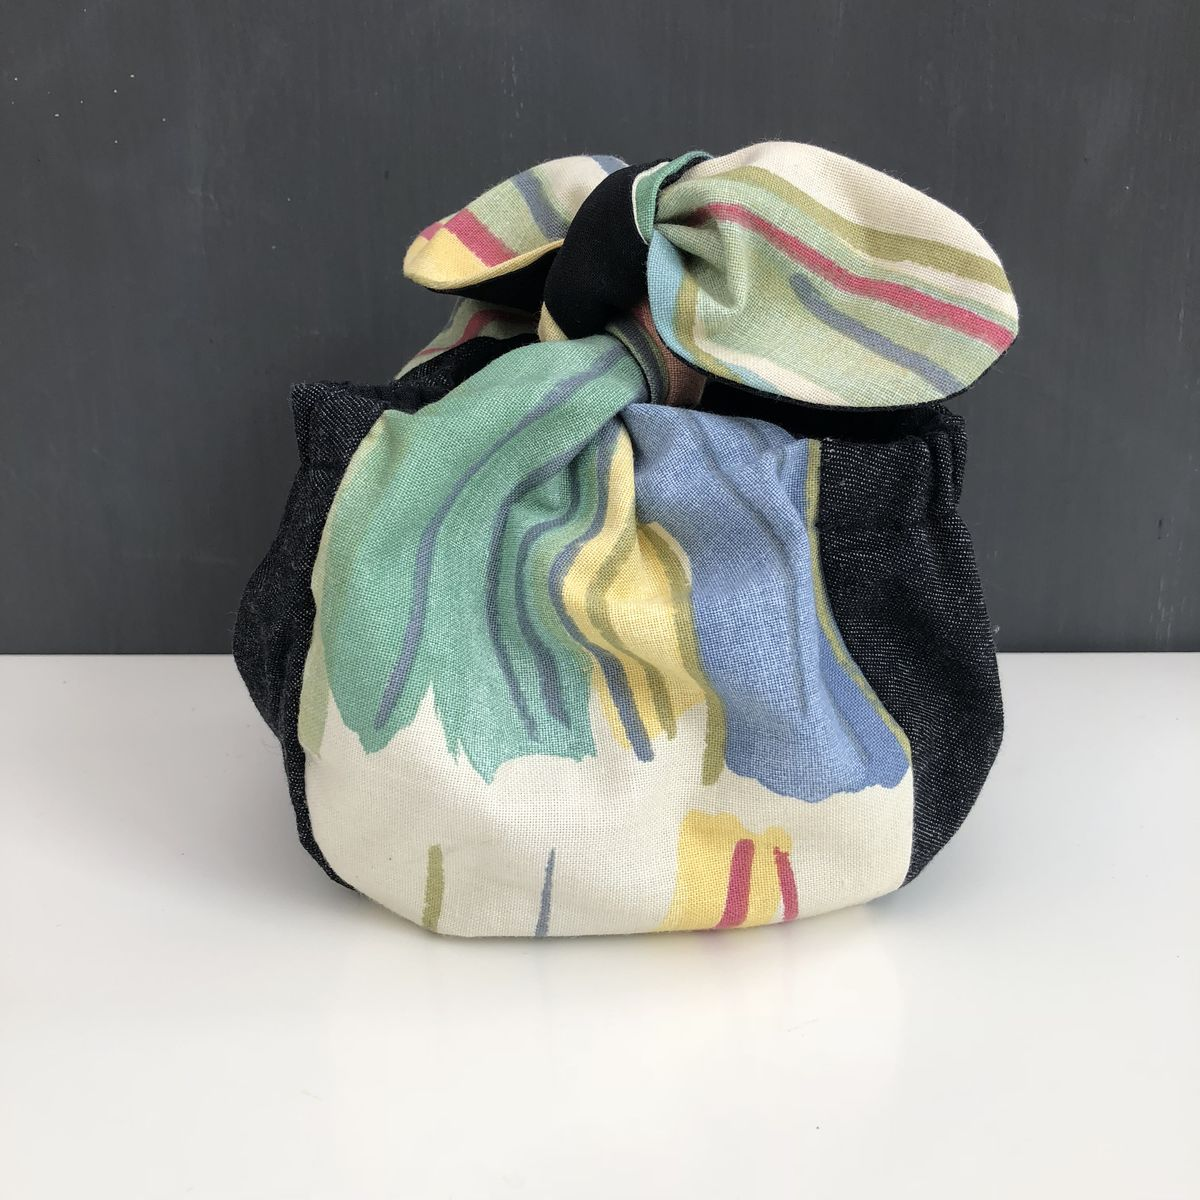 Japanese style cotton knotted fabric bag - small - product images  of